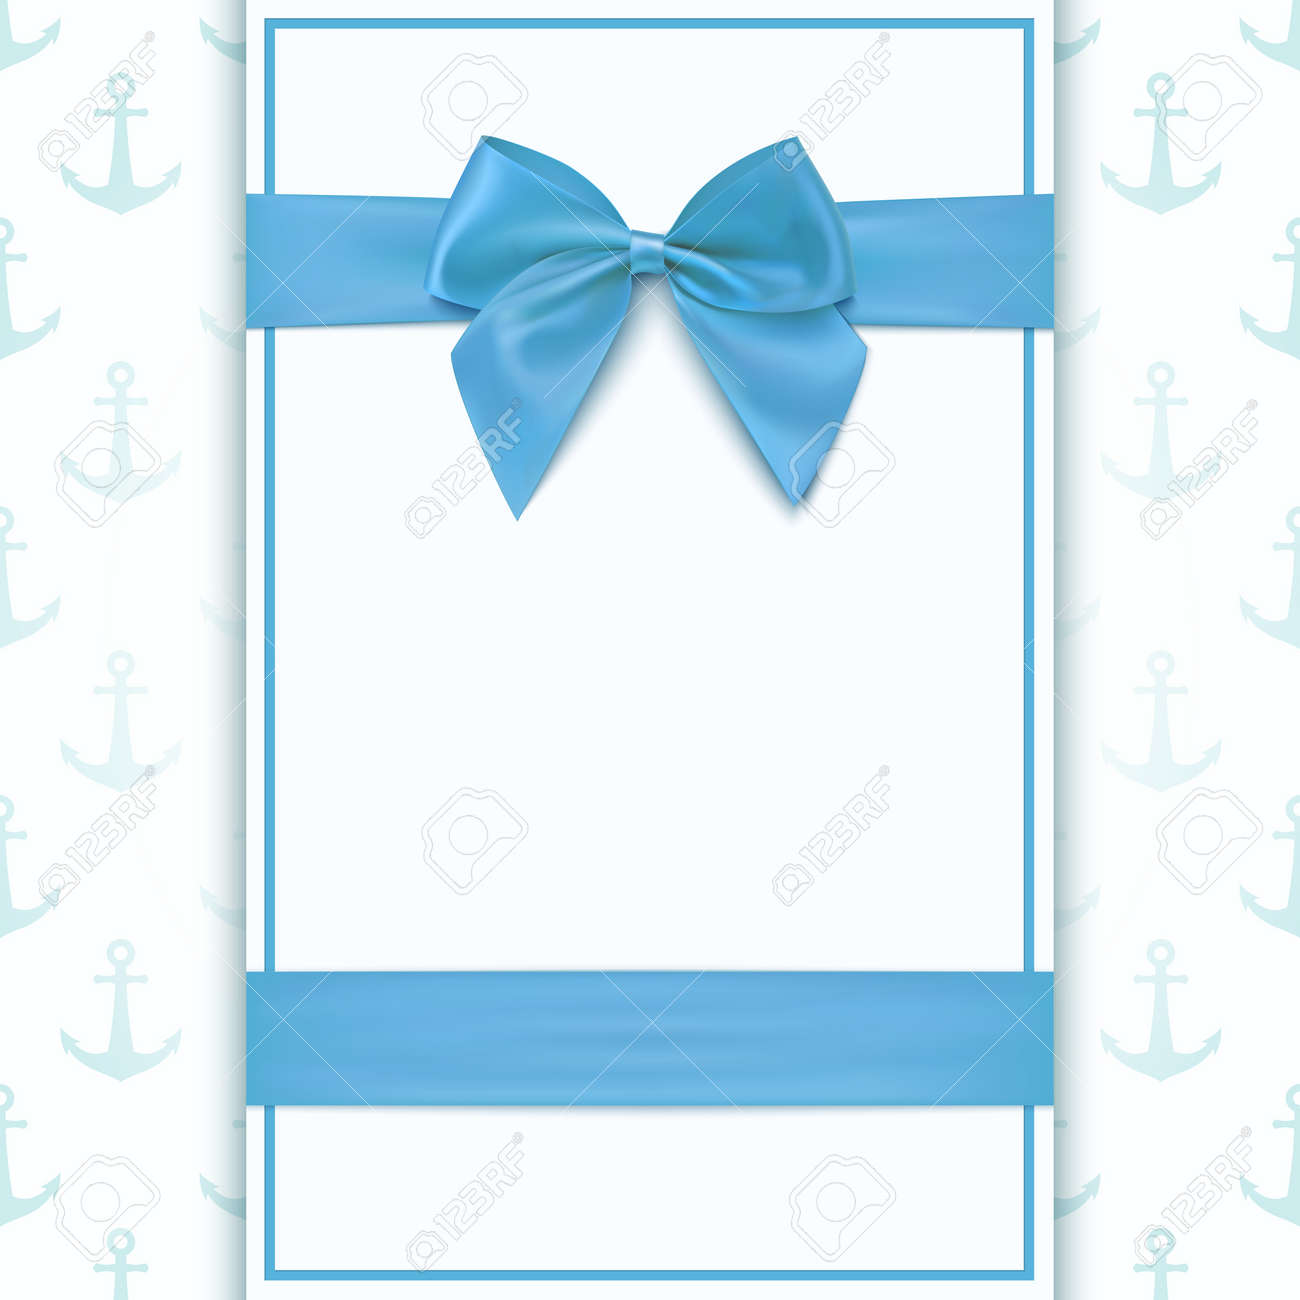 Blank Greeting Card Template For Baby Boy Shower Celebration